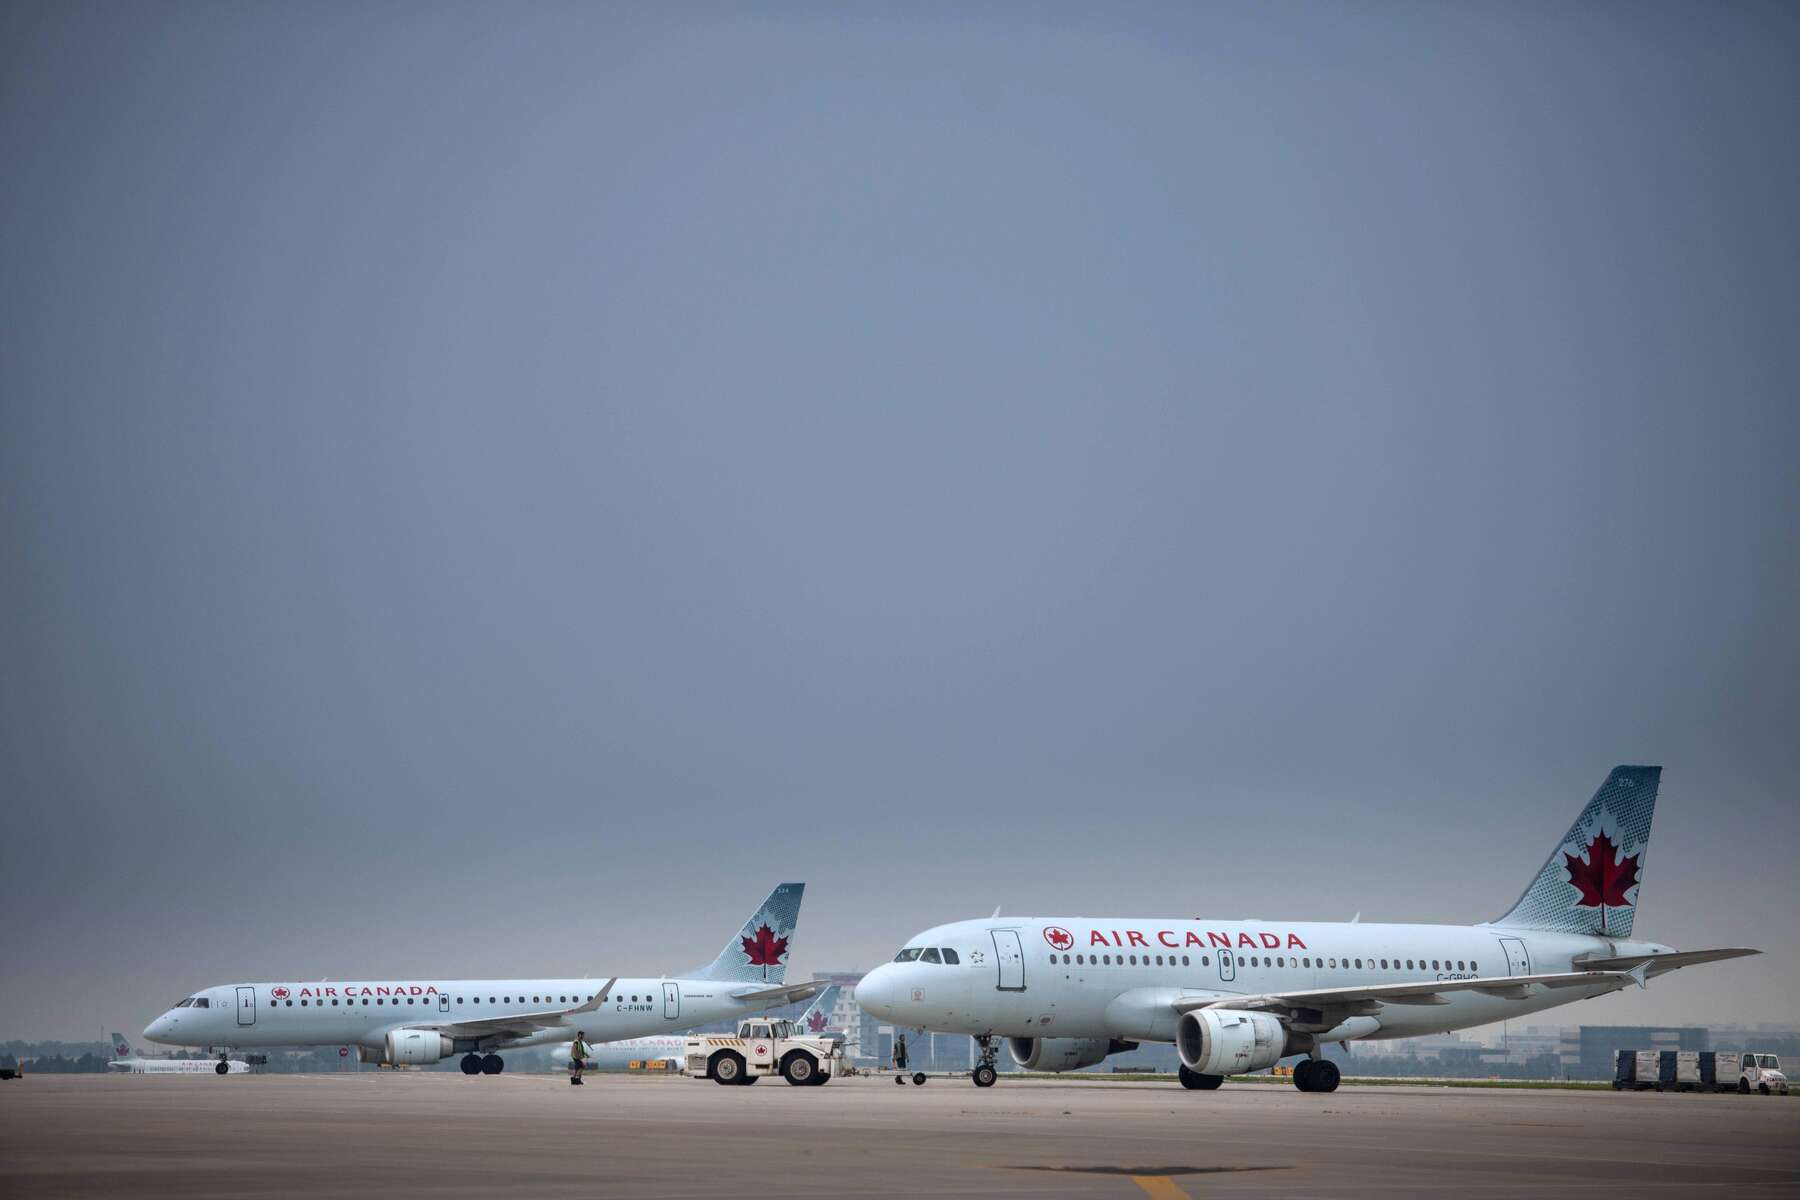 Air Canada Jets